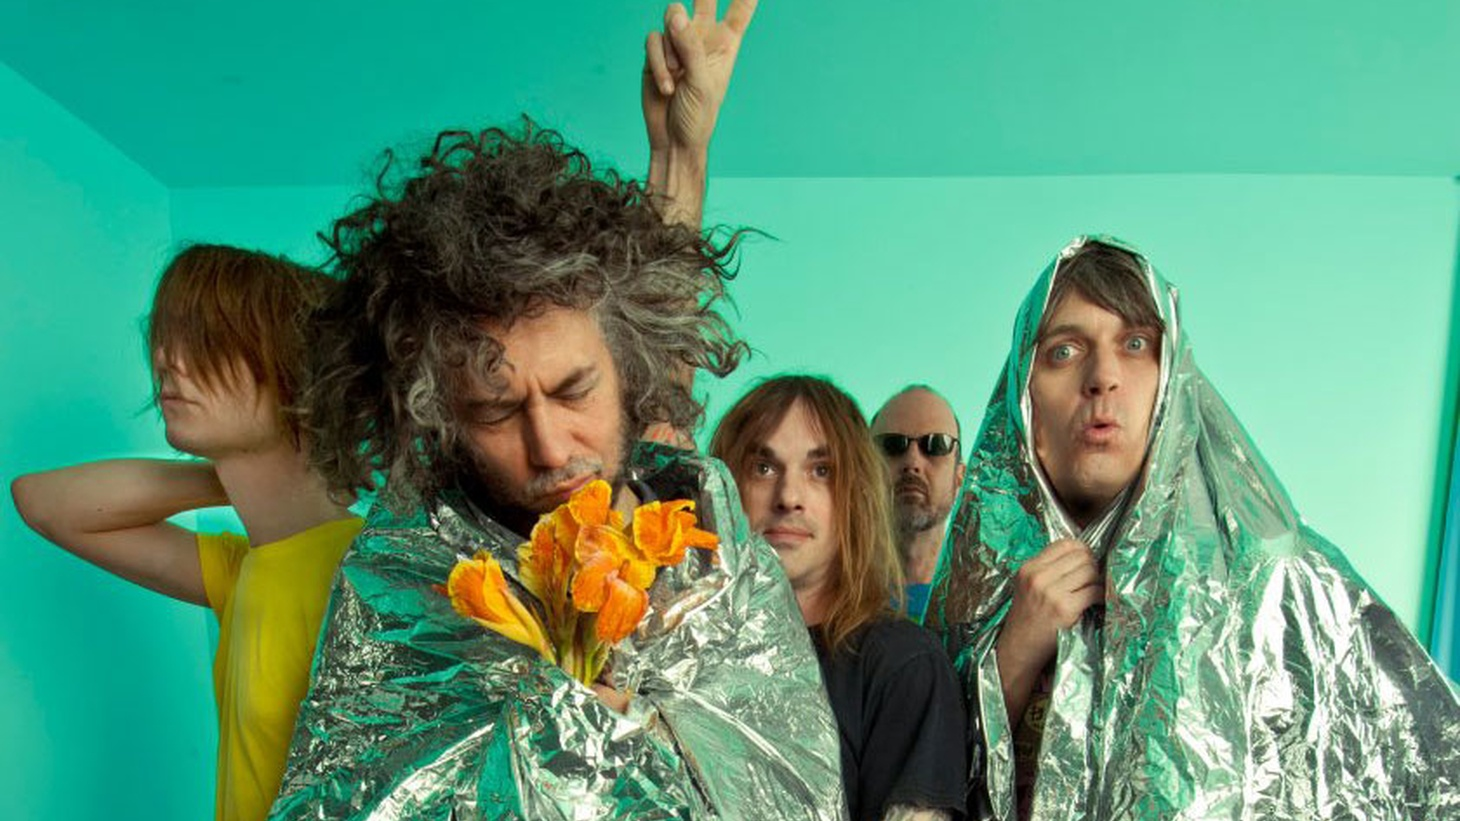 The Flaming Lips have performed on MBE many times but one session stands out in particular -- their visit in 2002, following the release of Yoshimi Battles The Pink Robots.